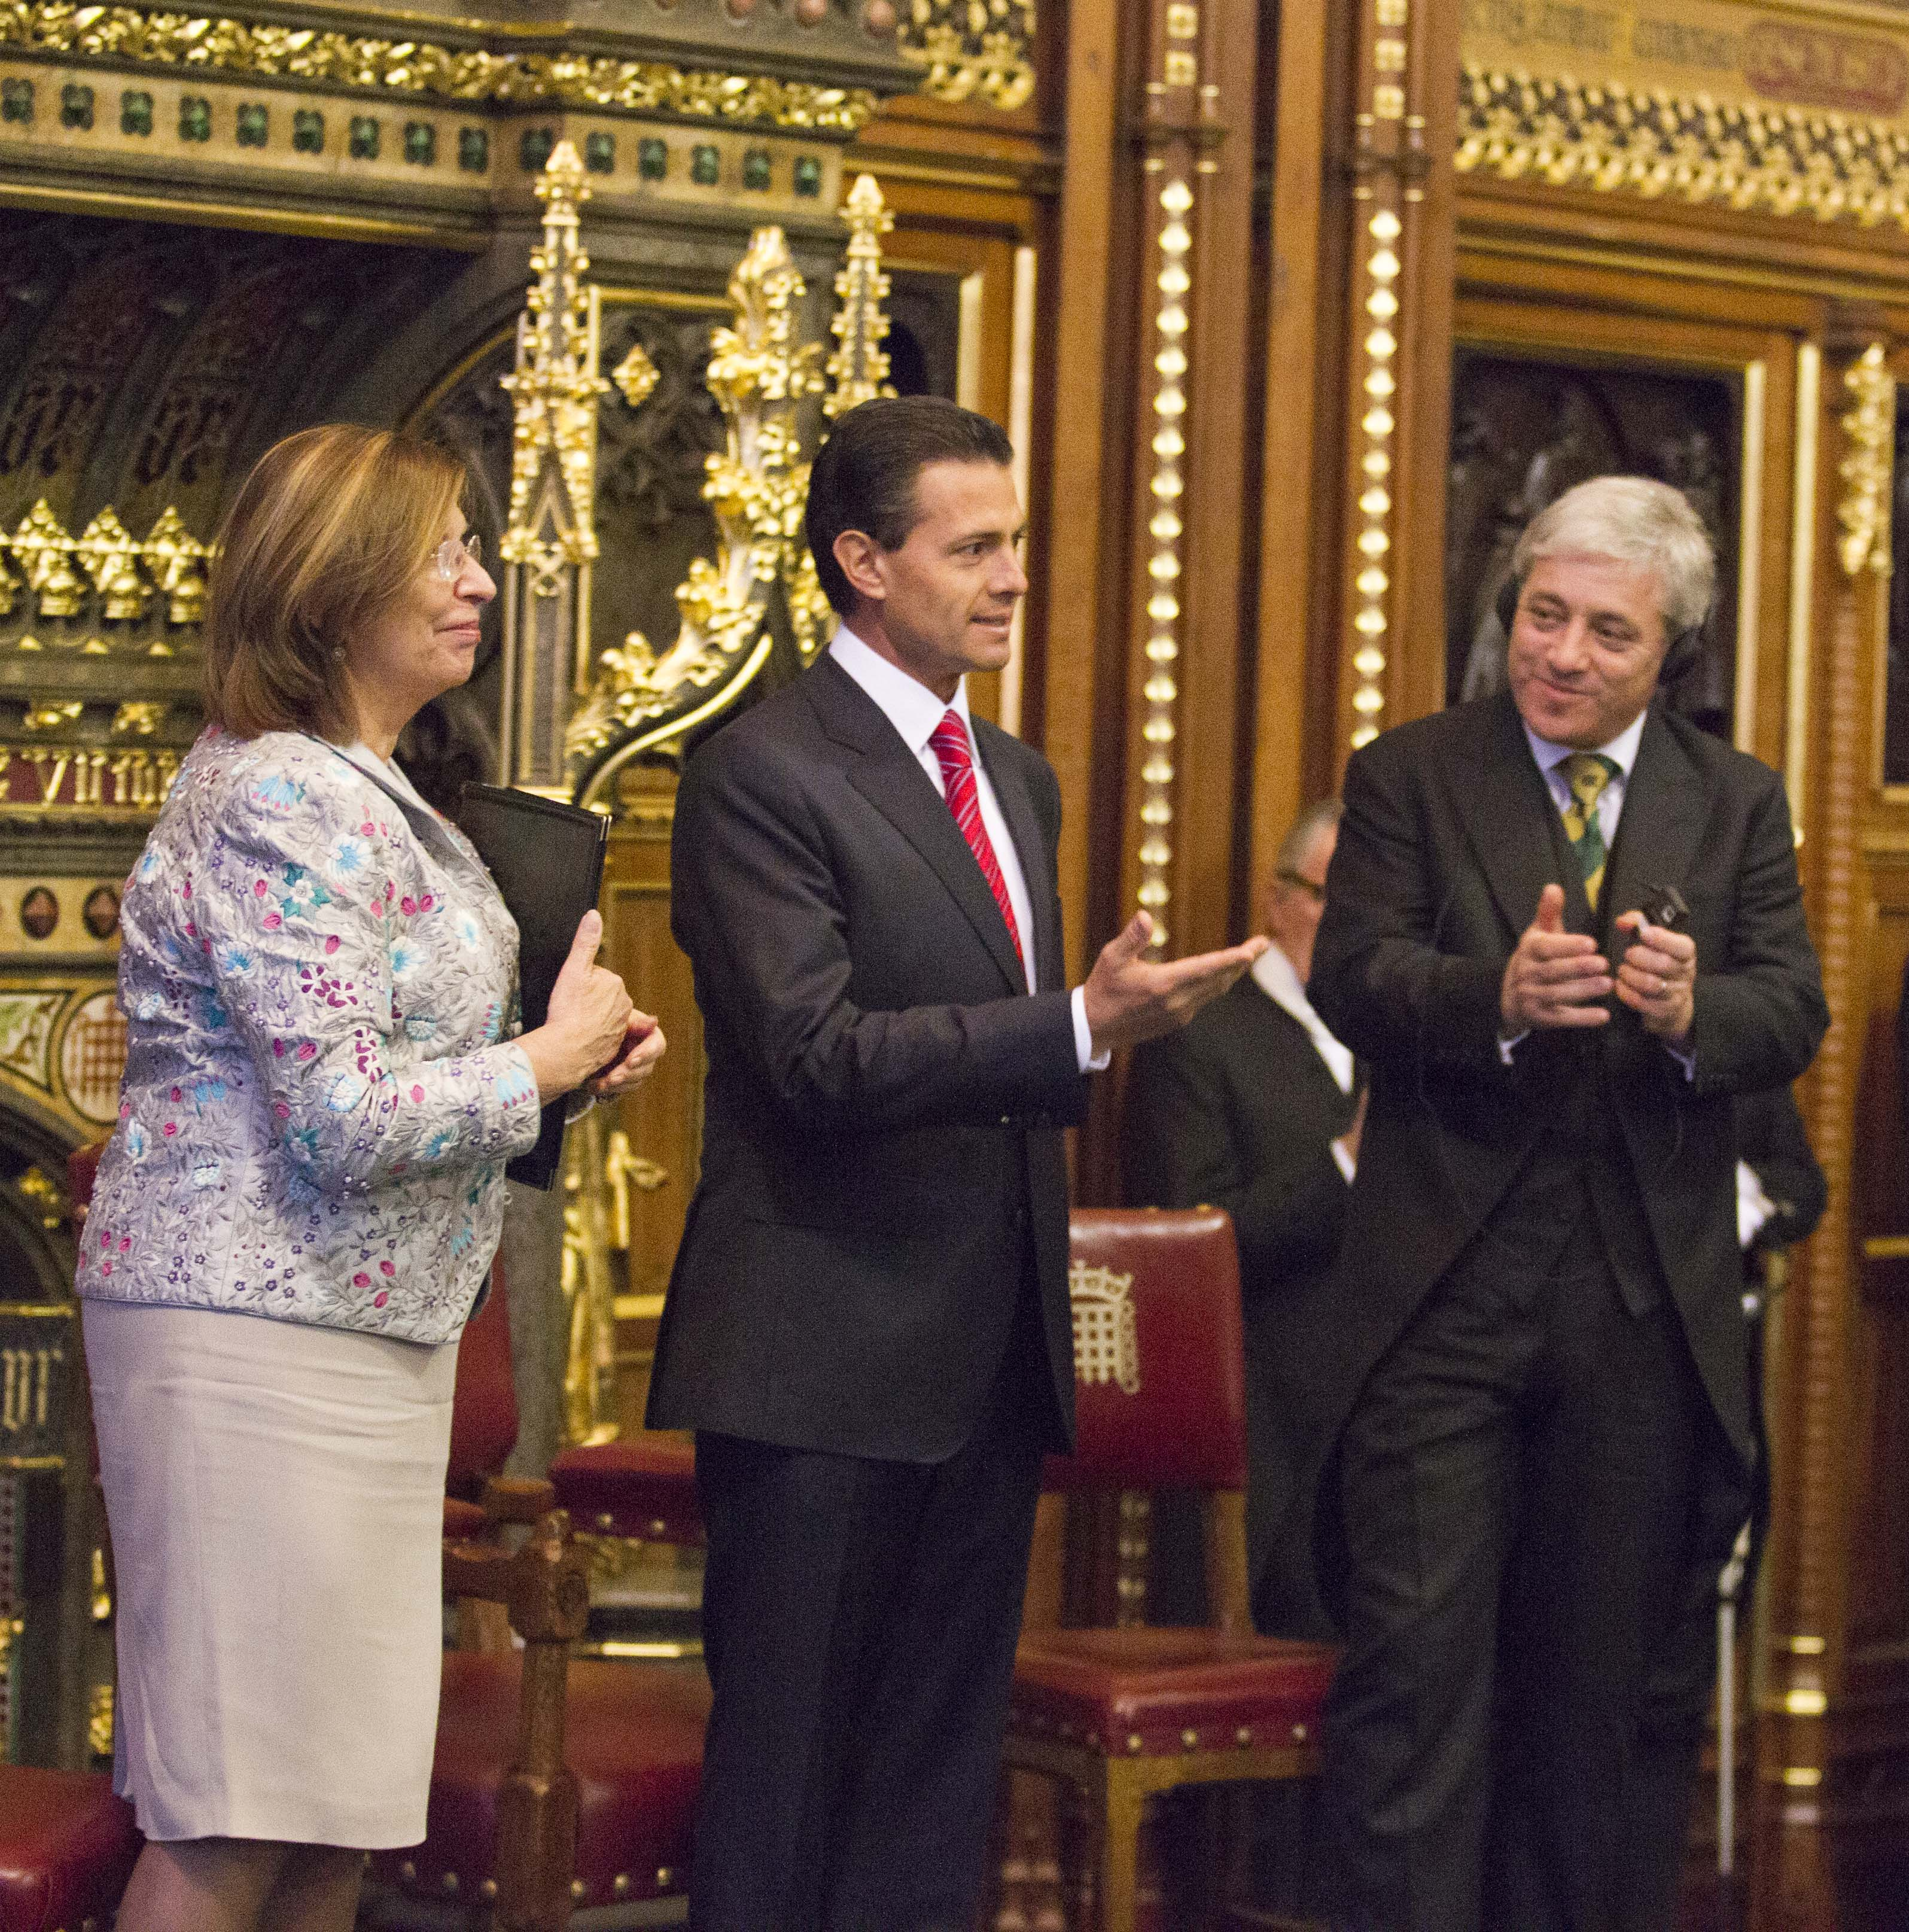 Intervencin del lic enrique pea nieto presidente de los estados unidos mexicanos en la house of lords 16520340050 o